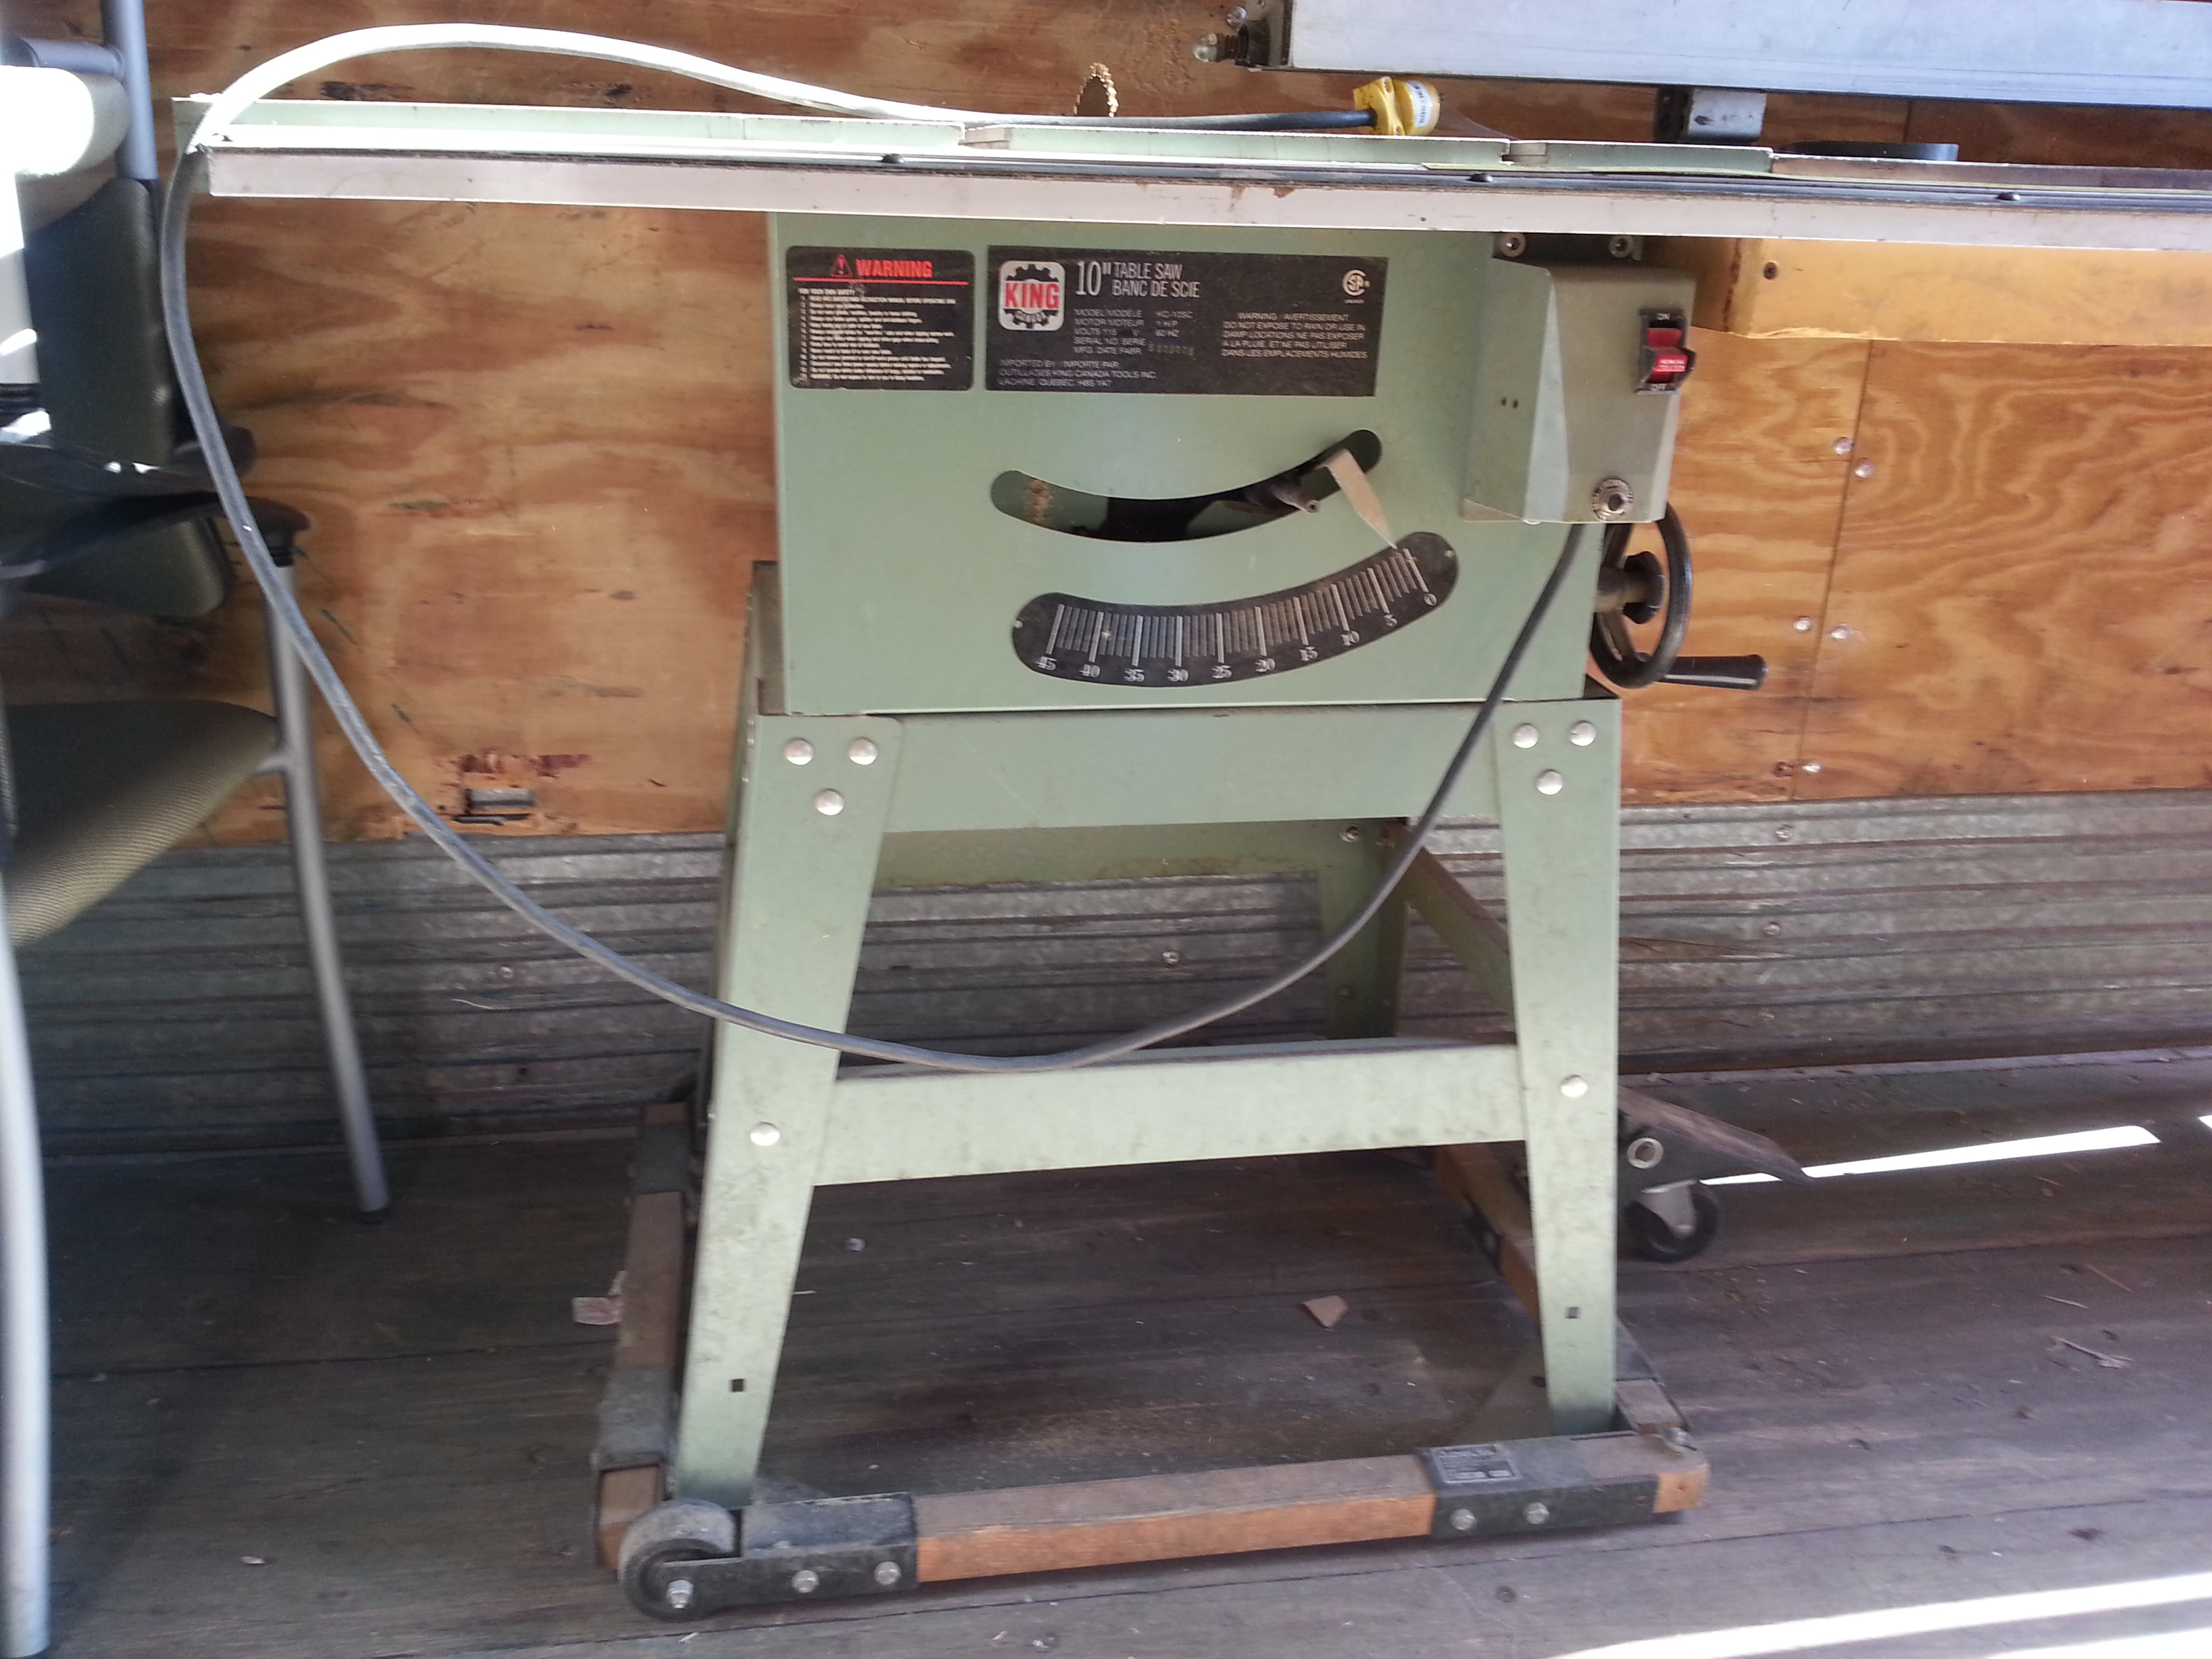 King 10 Inch 1 Hp Direct Drive Table Saw W Custom Fence Buy Sell Used Office